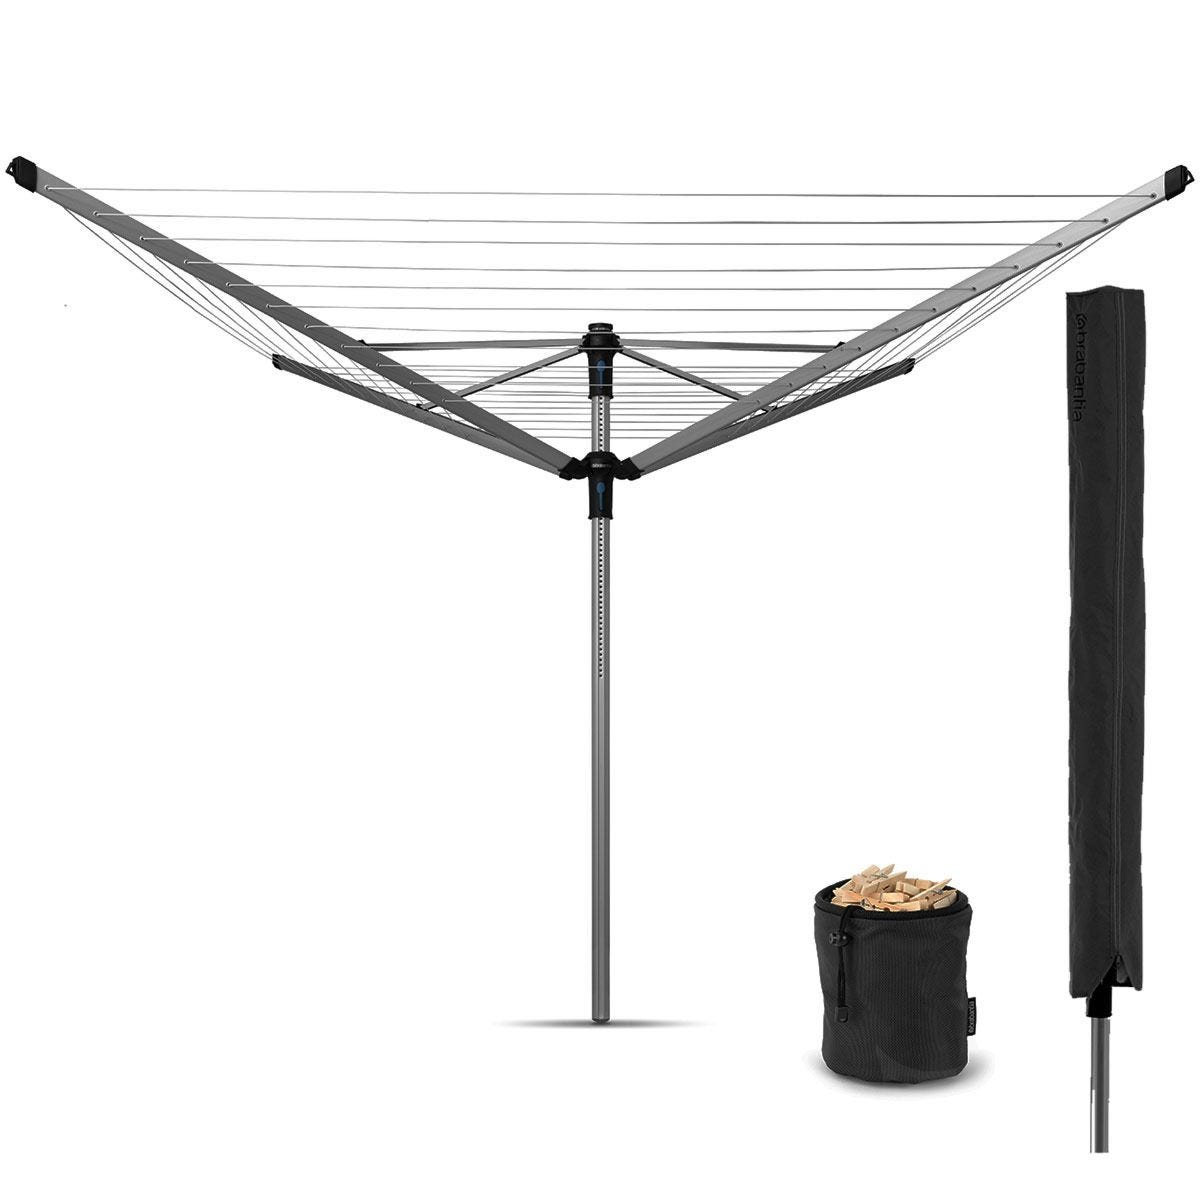 Brabantia Lift-O-Matic Advance 60m 4-Arm Rotary Airer with Cover and Peg Bag